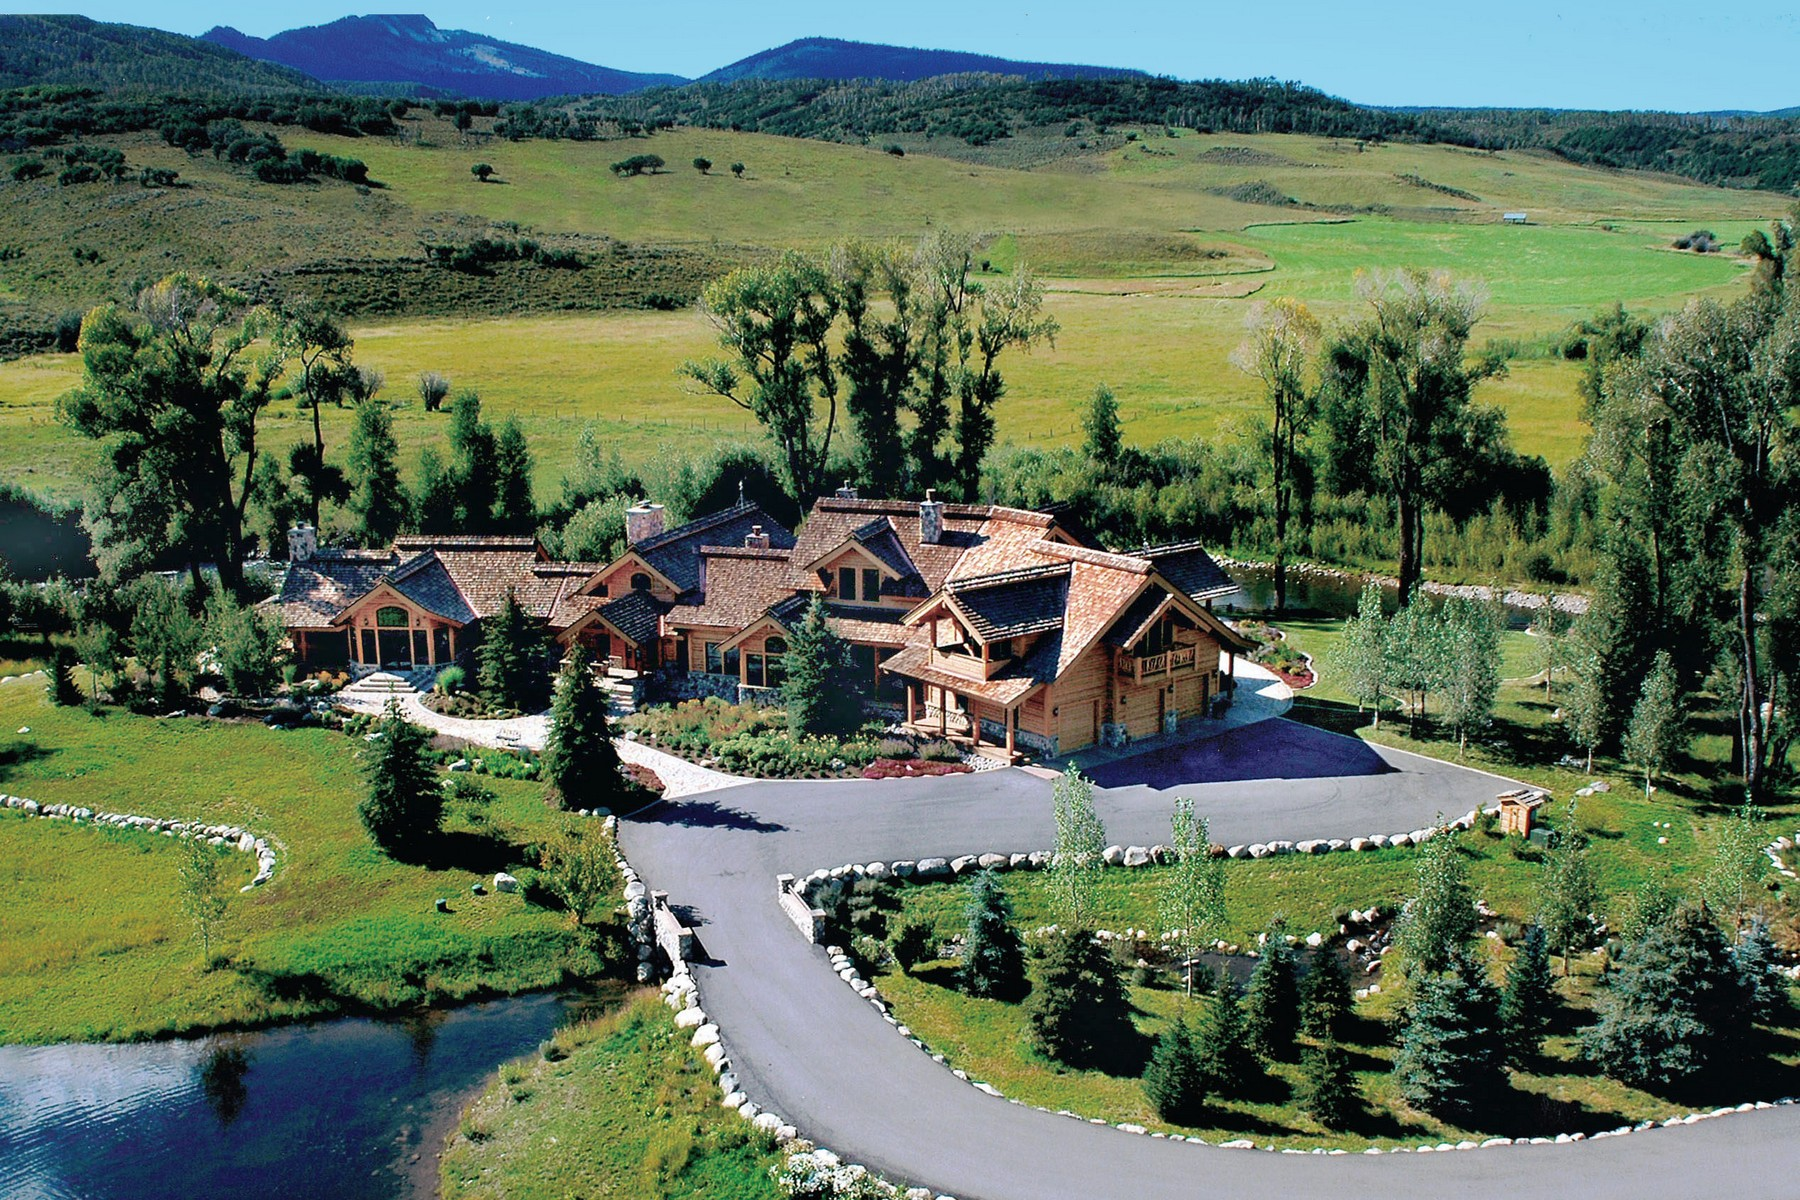 Single Family Home for Sale at The River House 52715 RCR 129 Steamboat Springs, Colorado 80487 United States